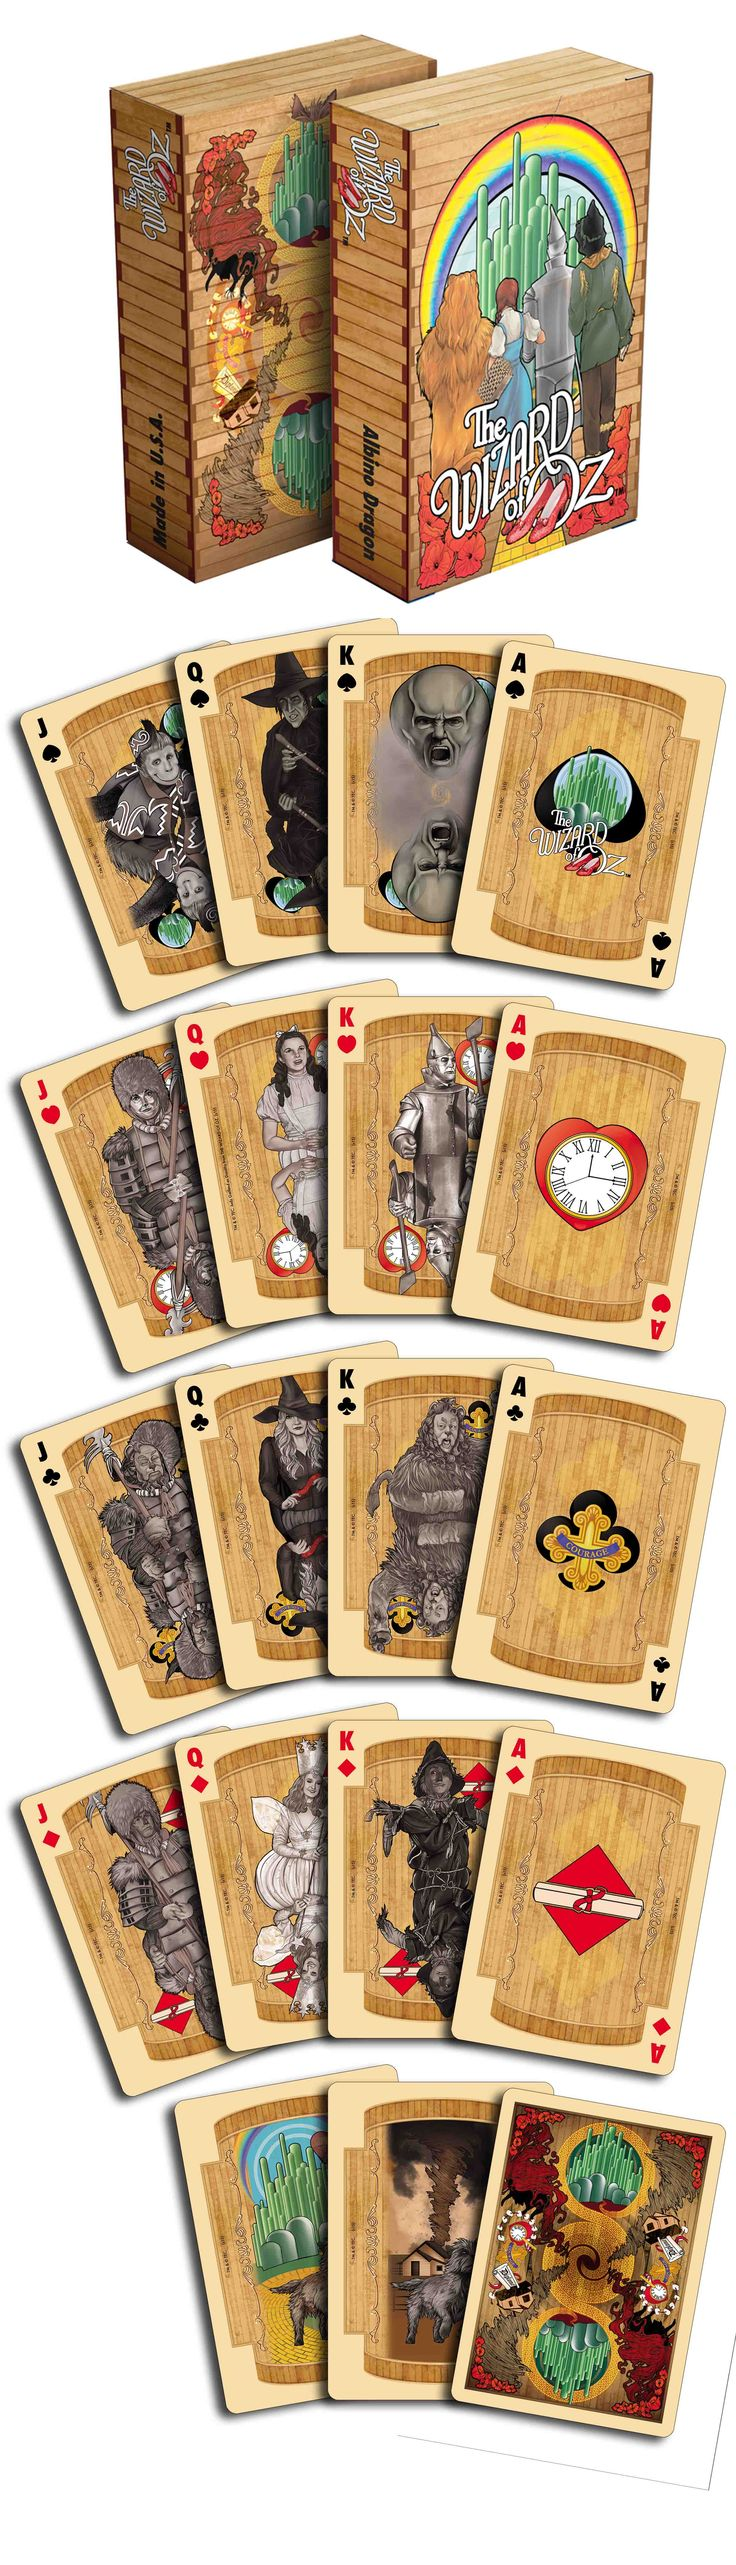 The Wizard of Oz Kansas deck by Albino Dragon. These are amazing! The black and white images in contrast to the 75th version is so clever. Now available on www.albinodragon.com.